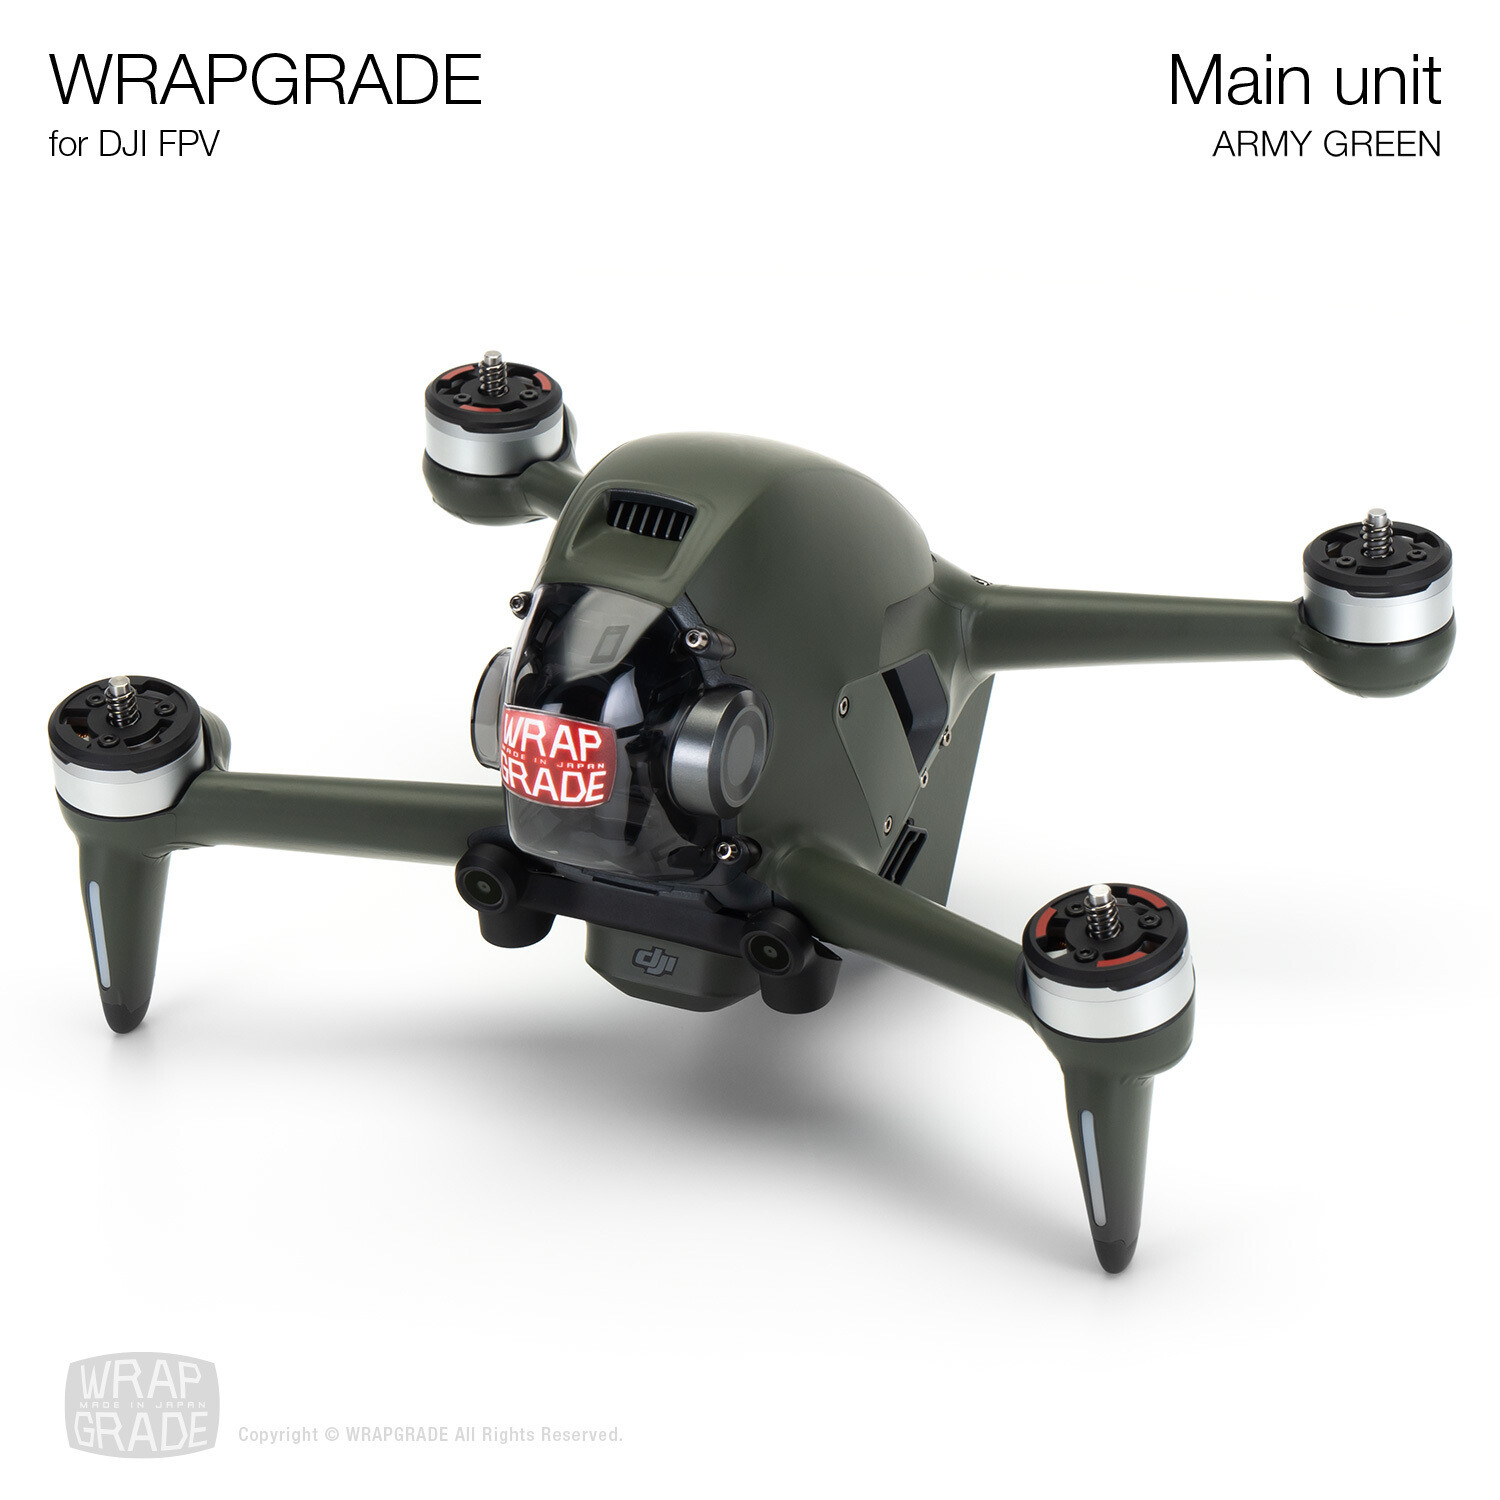 WRAPGRADE for DJI FPV   Drone (ARMY GREEN)